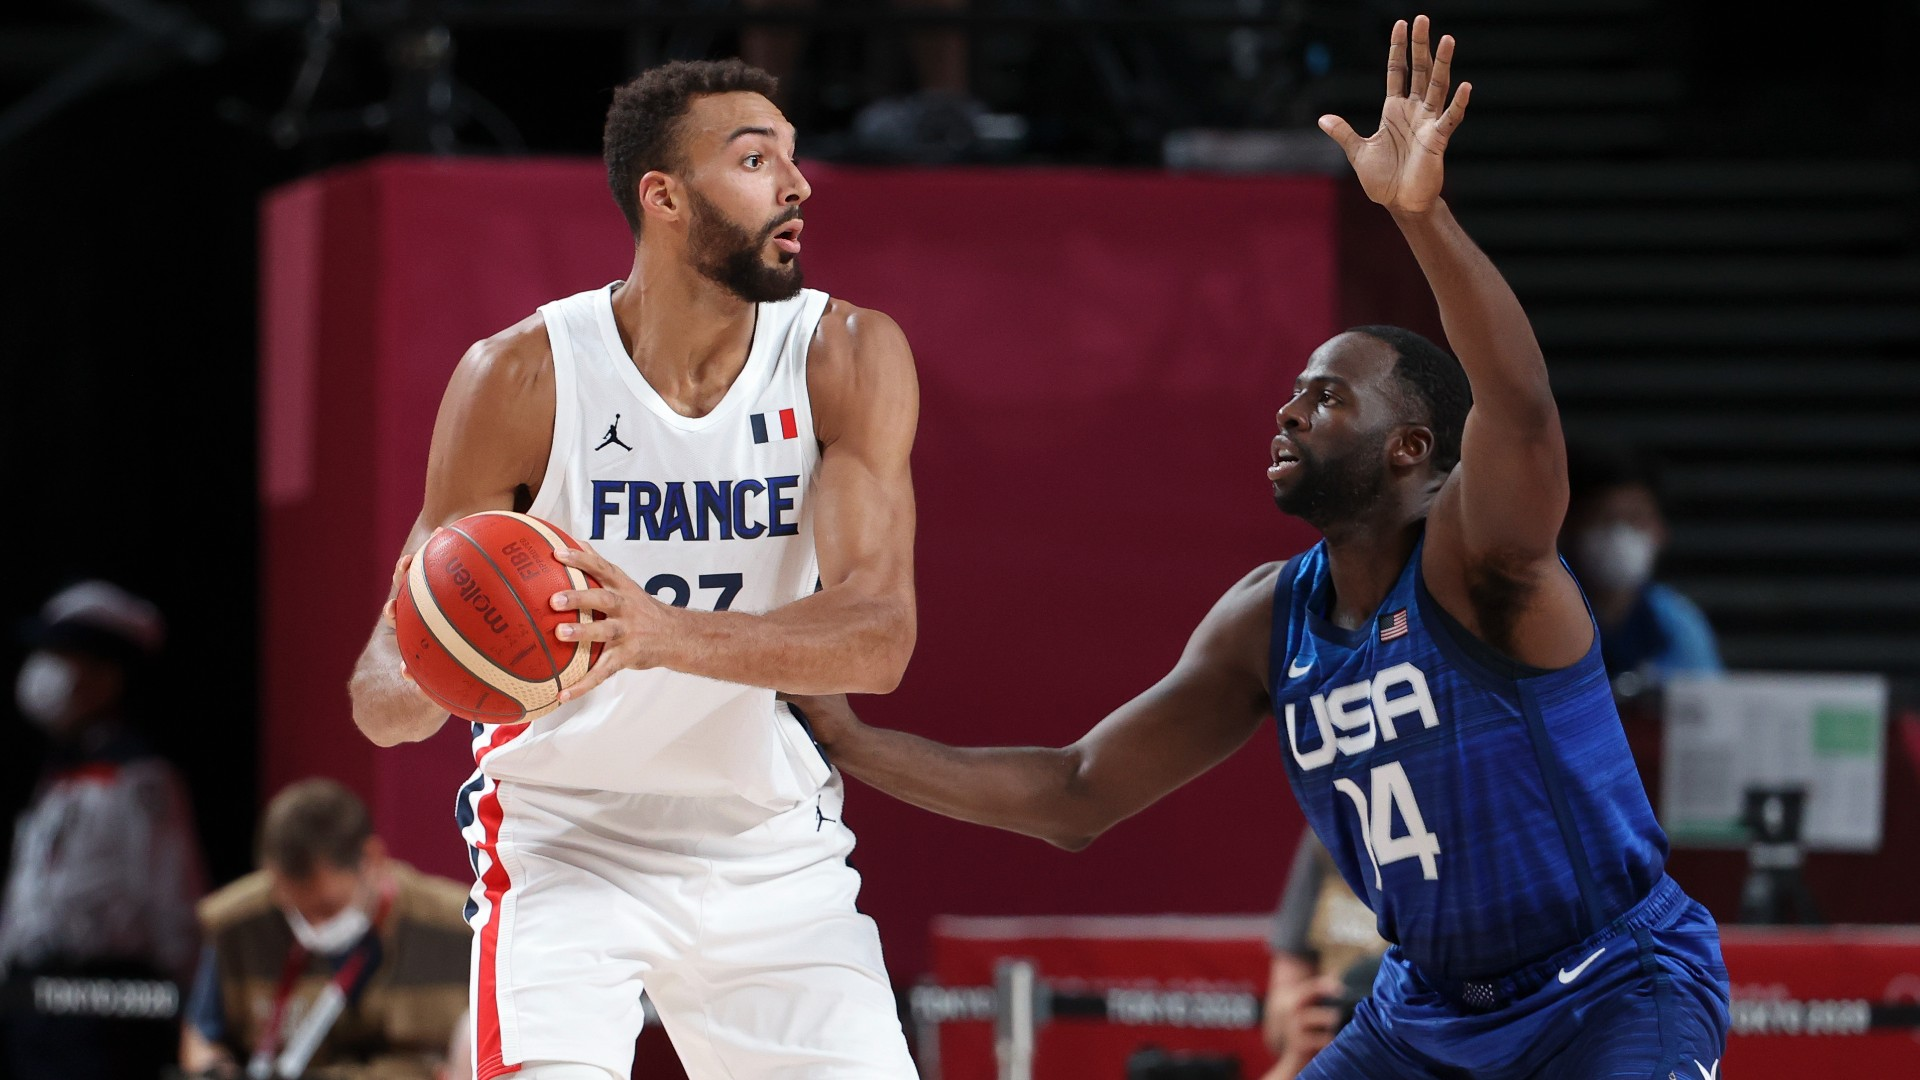 USA vs. France Live Score, Updates, Highlights of the 2021 Olympic Basketball Gold Medal Game